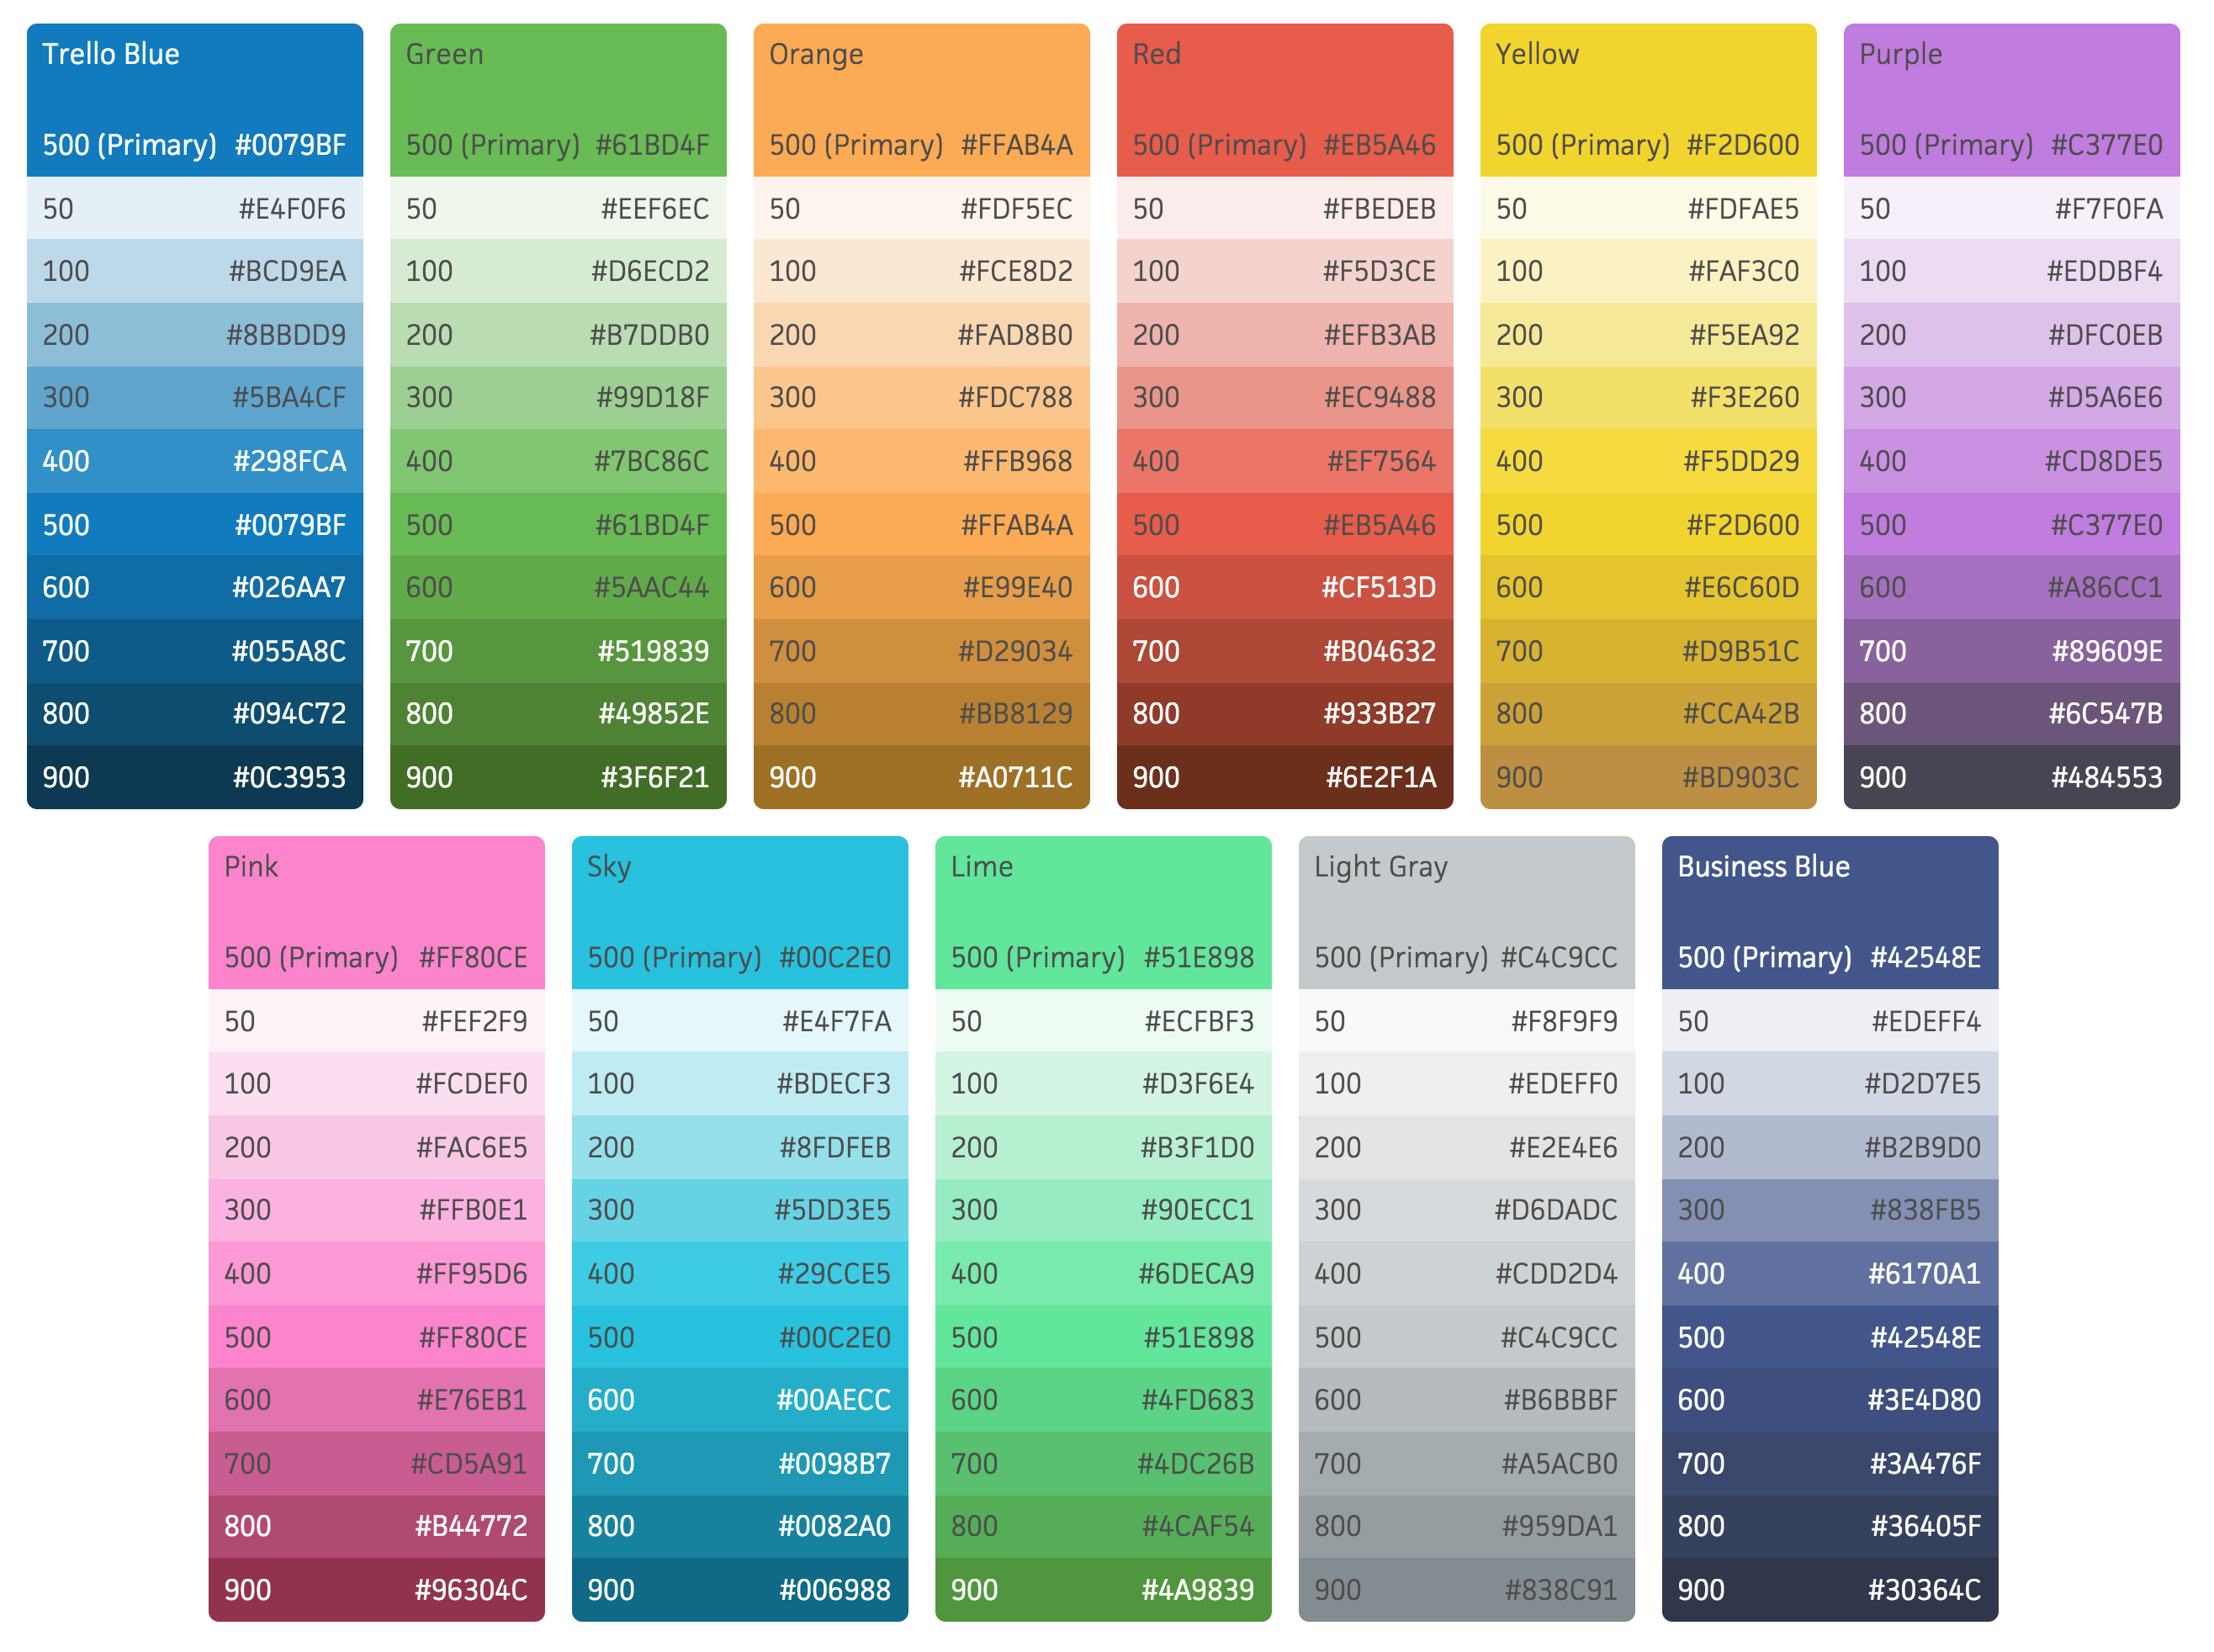 Colors from the Trello color palette